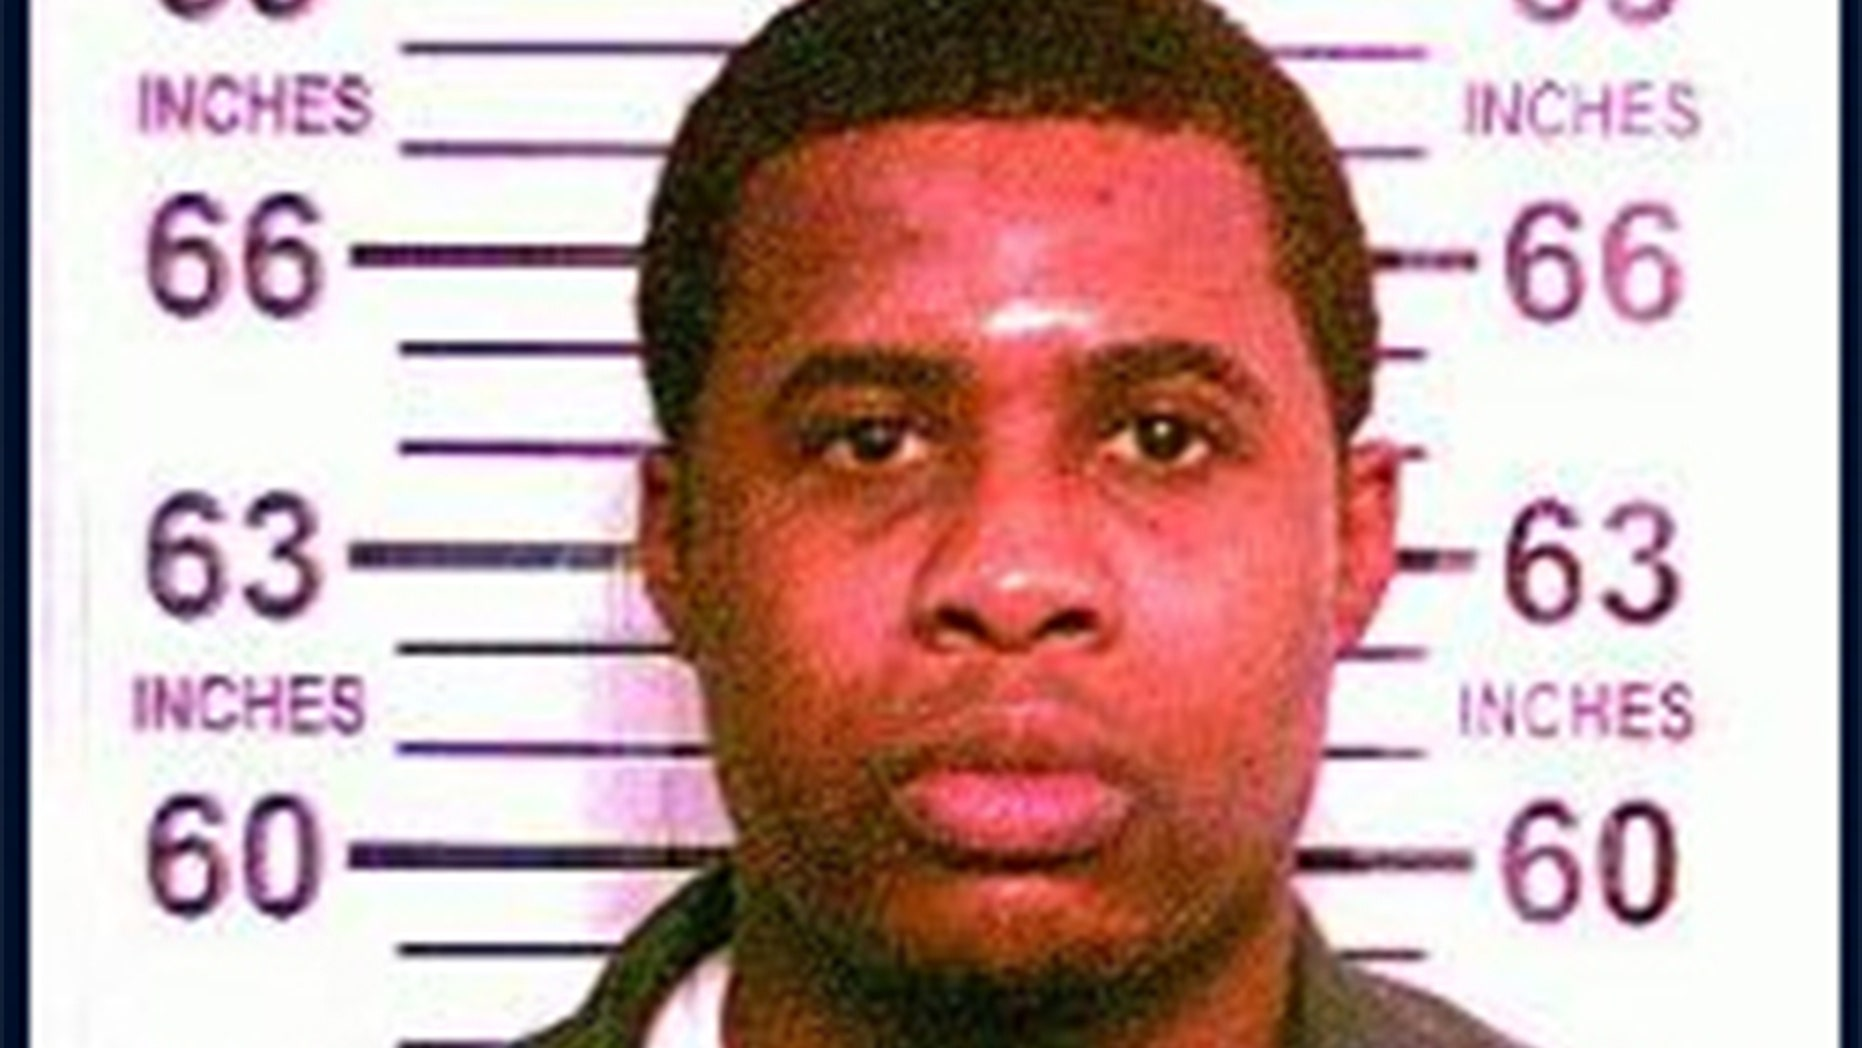 Mark Jenkins has been charged in the beating death of a 3-year-old New York City girl.